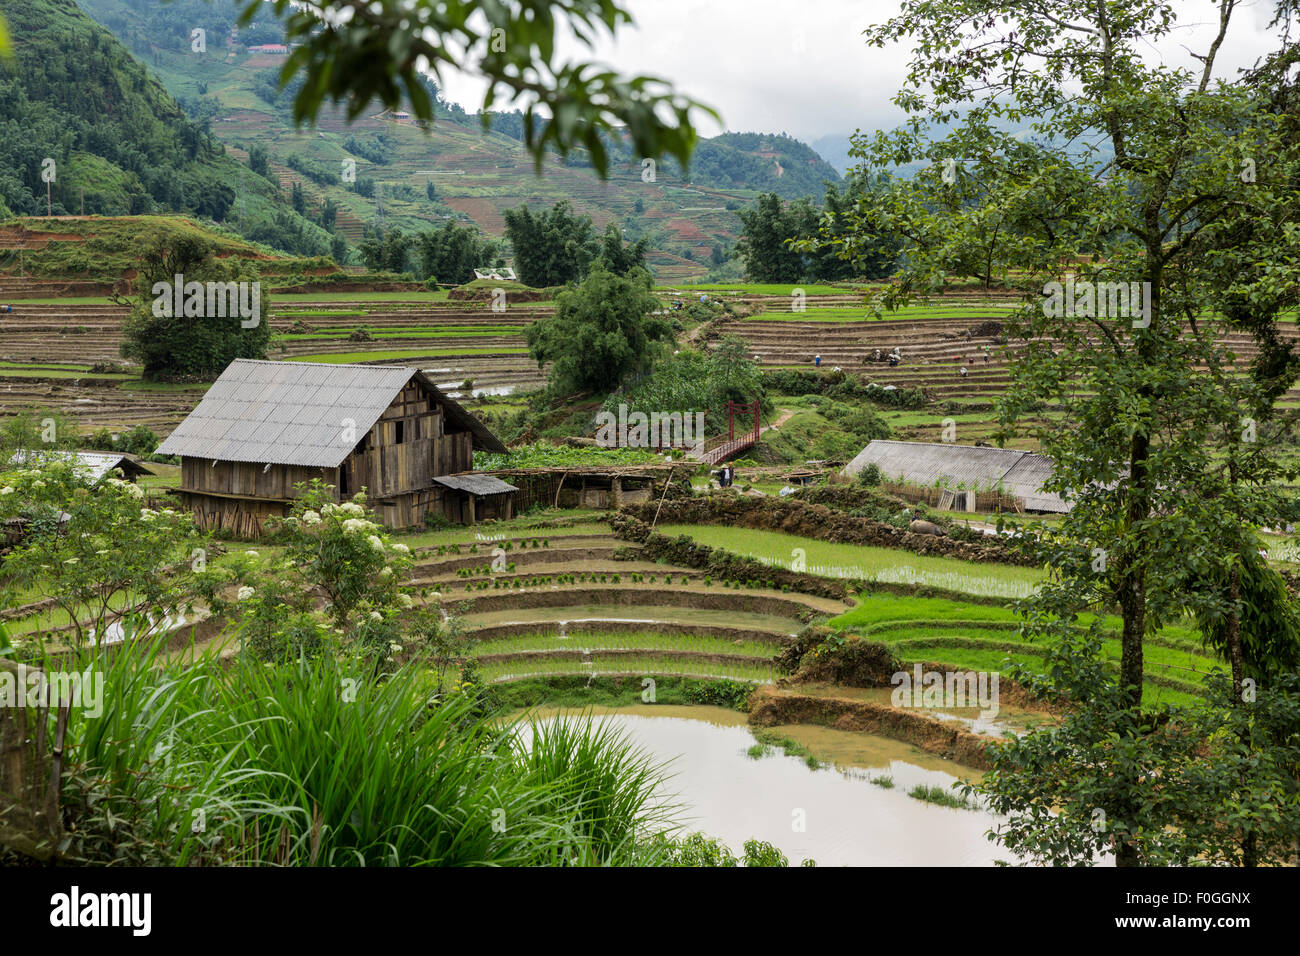 Freshly planted terraced rice paddies and farm buildings in Cat Cat village near Sa Pa in northern Vietnam during - Stock Image